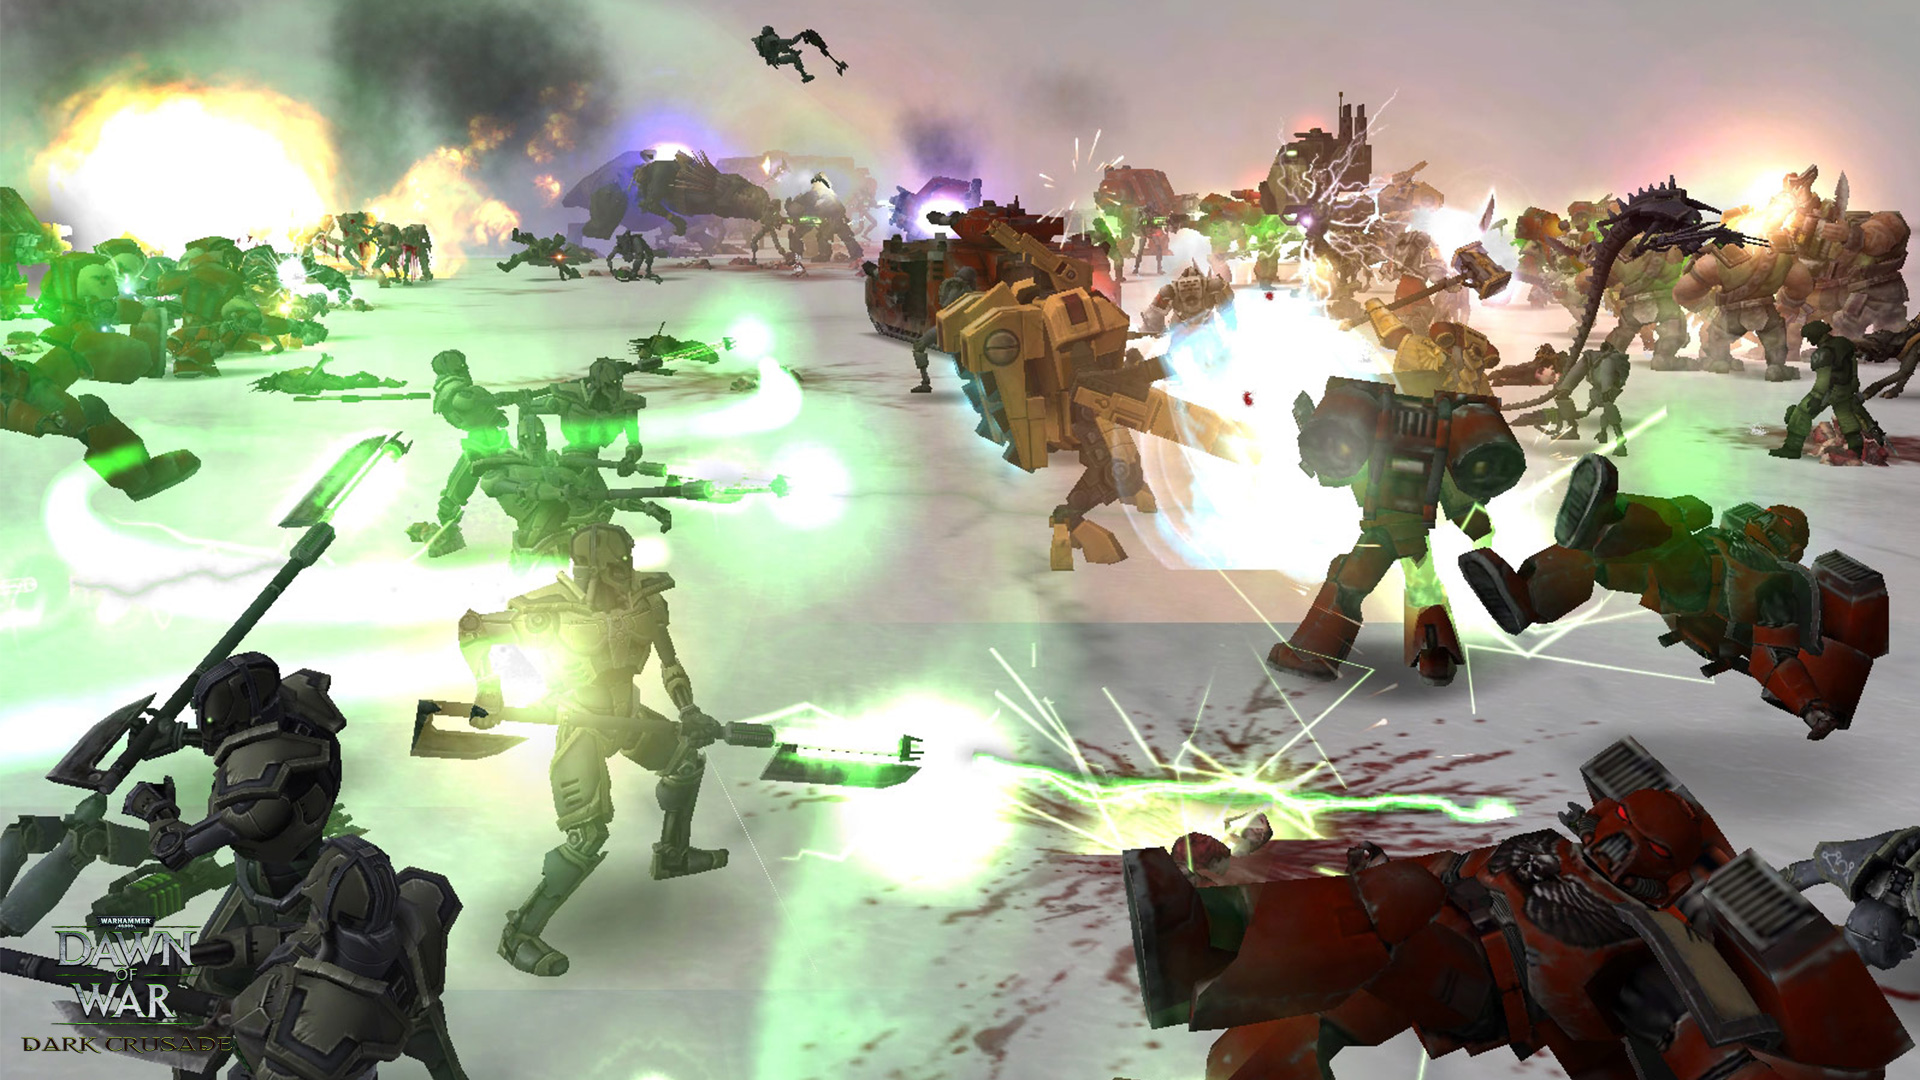 Warhammer 40,000: Dawn of War - Dark Crusade screenshot